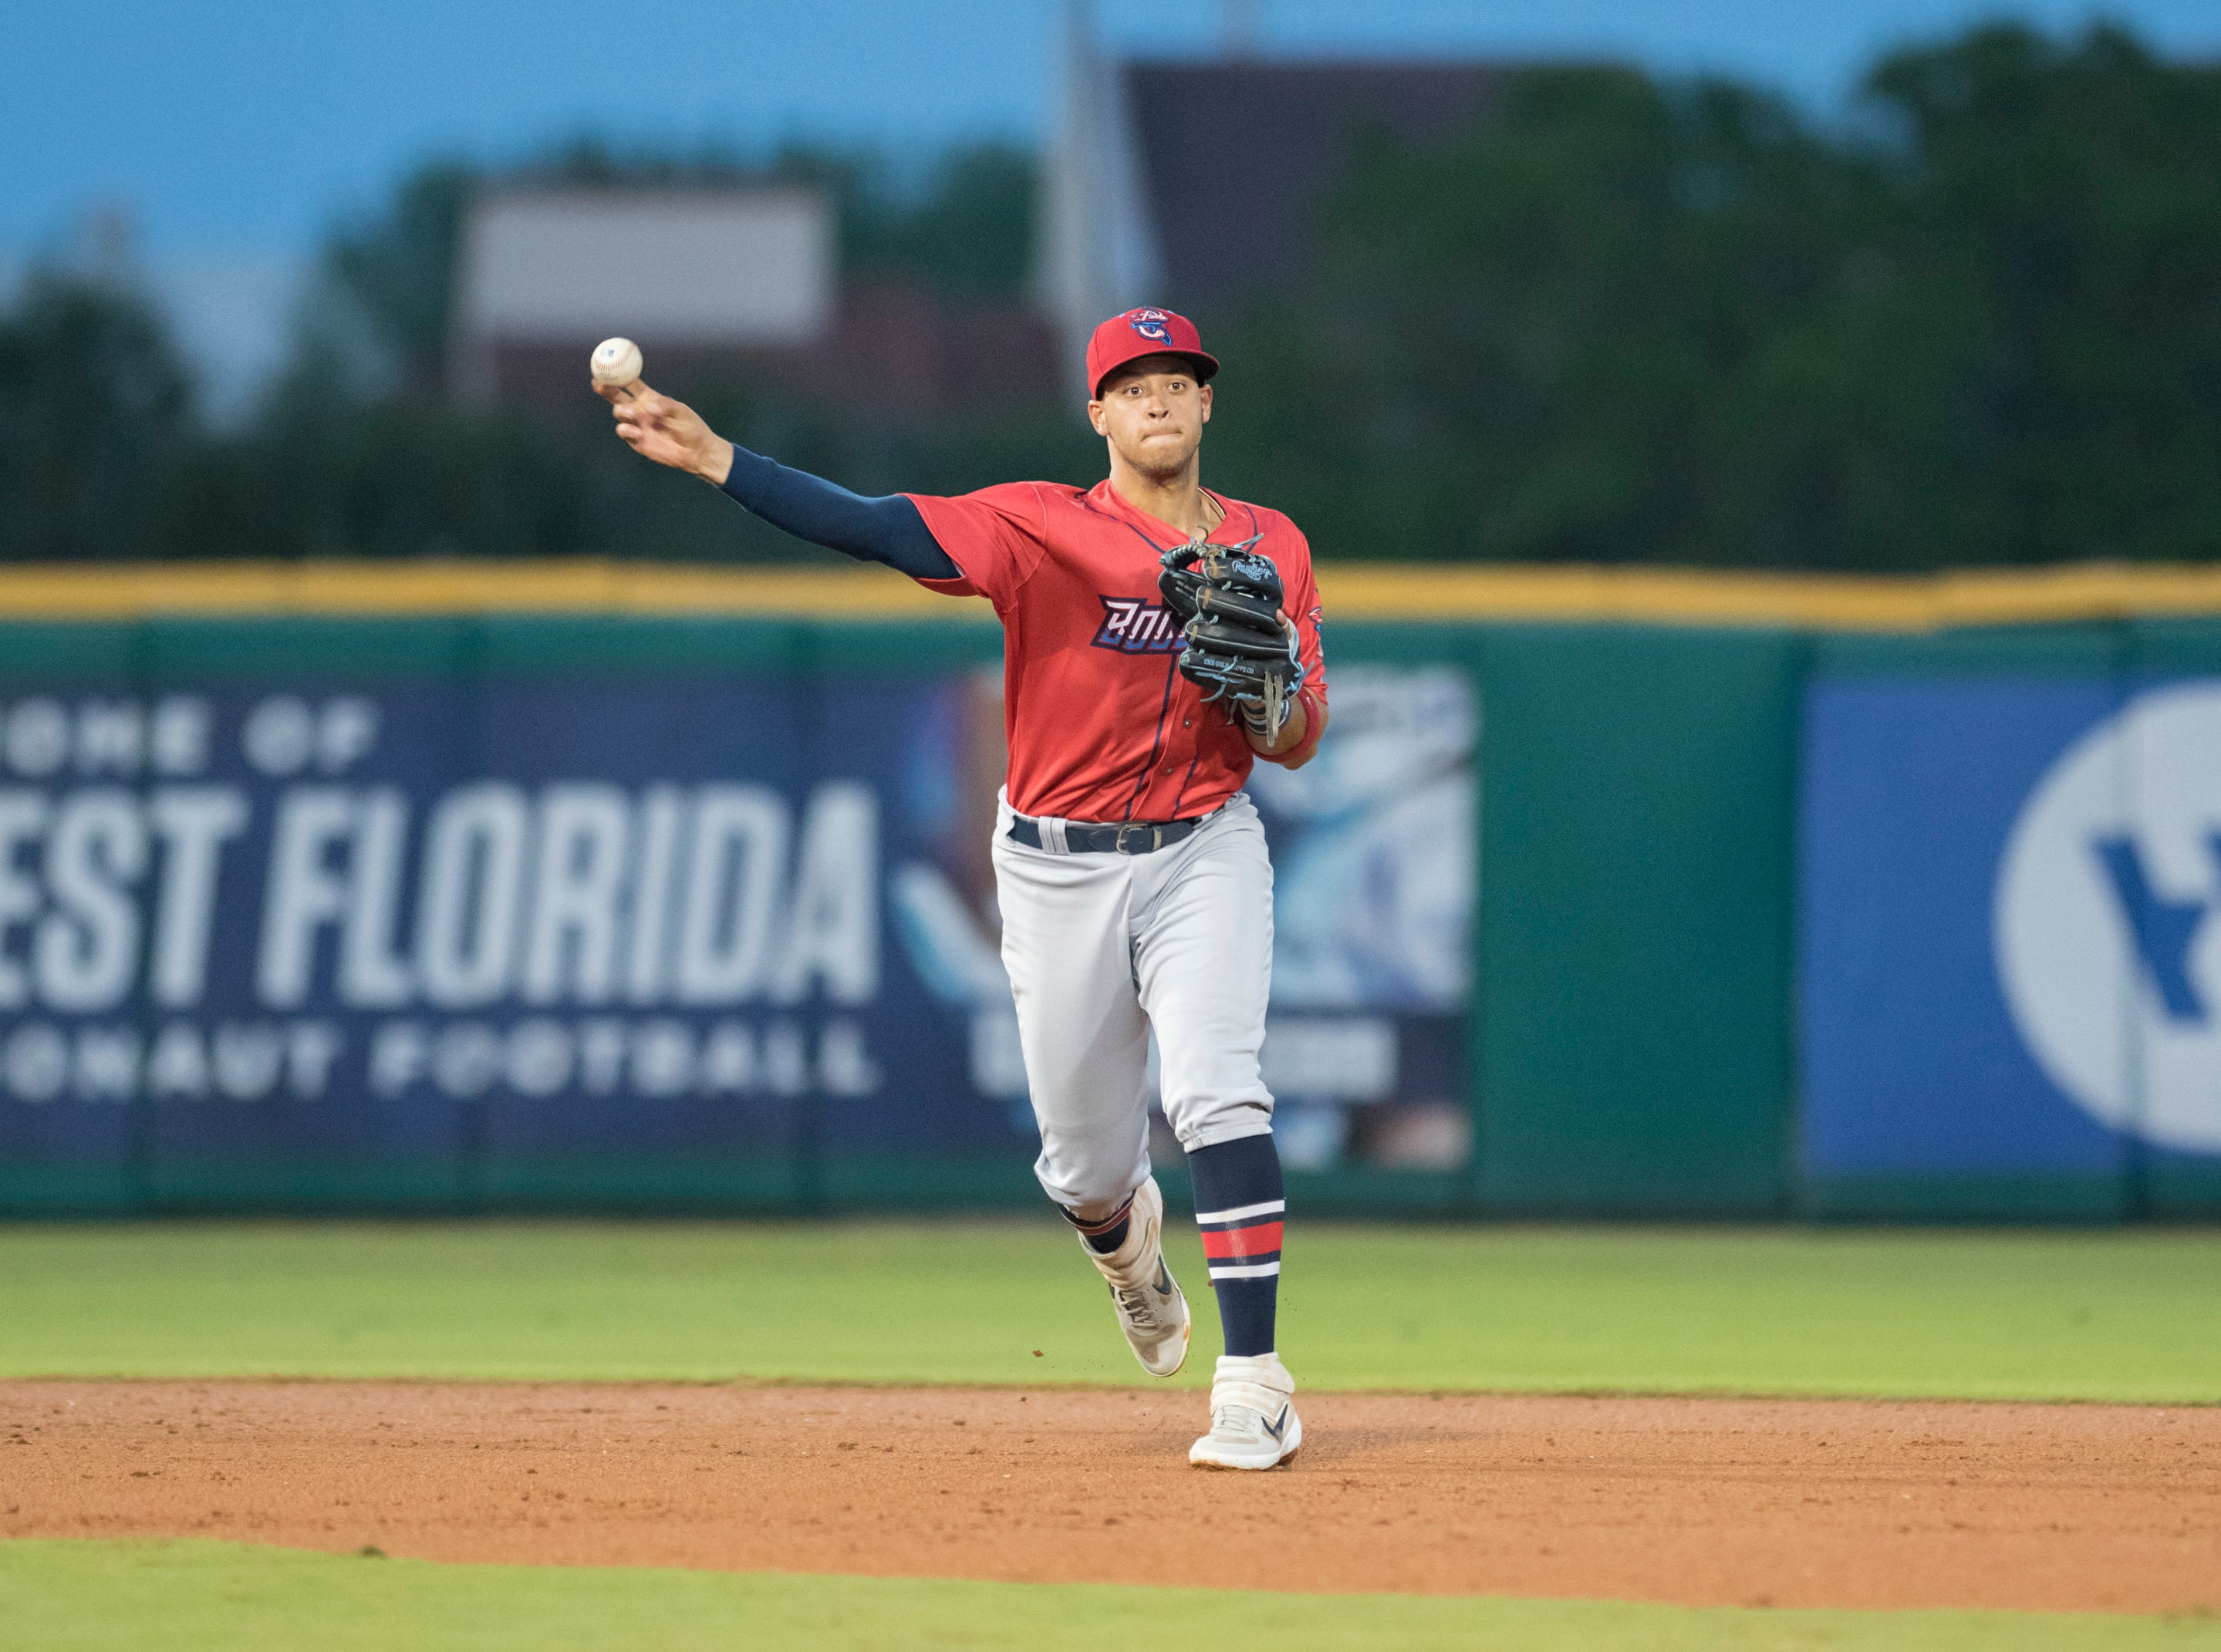 Shortstop Joe Dunand (3) tosses to first for an out during the Jacksonville Jumbo Shrimp vs Pensacola Blue Wahoos baseball game in Pensacola on Friday, April 12, 2019.